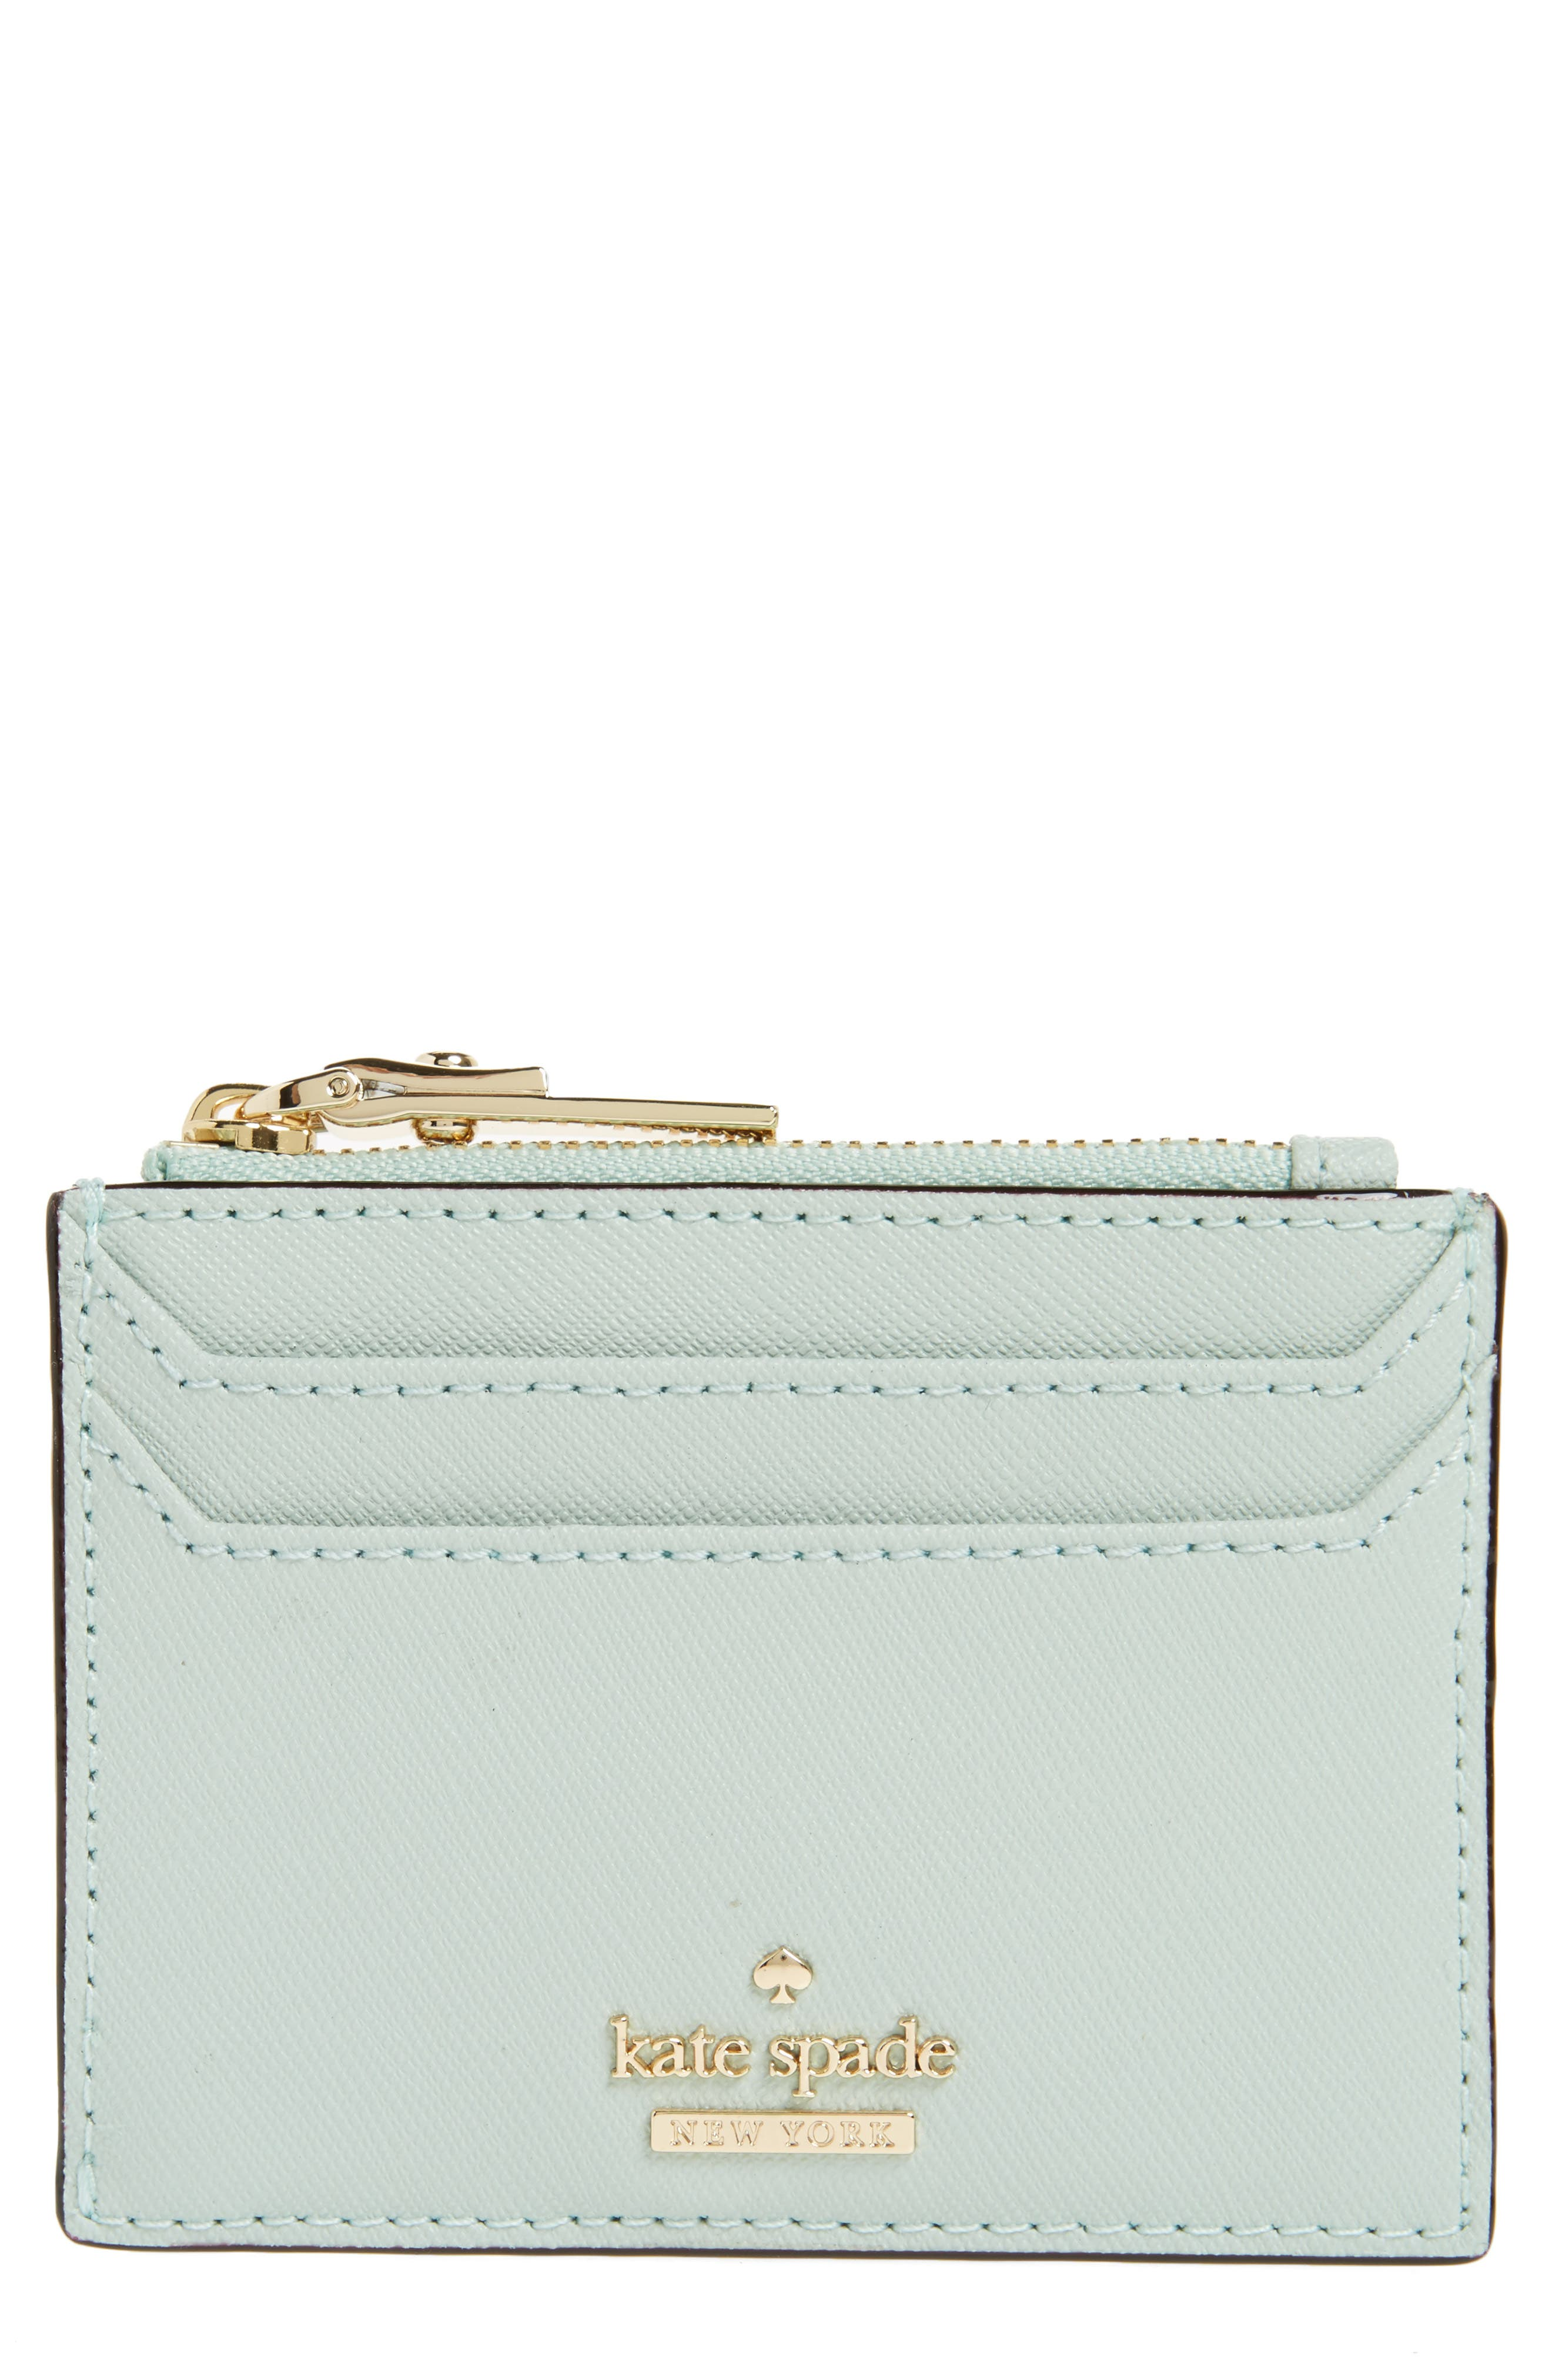 cameron street - lalena leather card case,                             Main thumbnail 1, color,                             Misty Mint